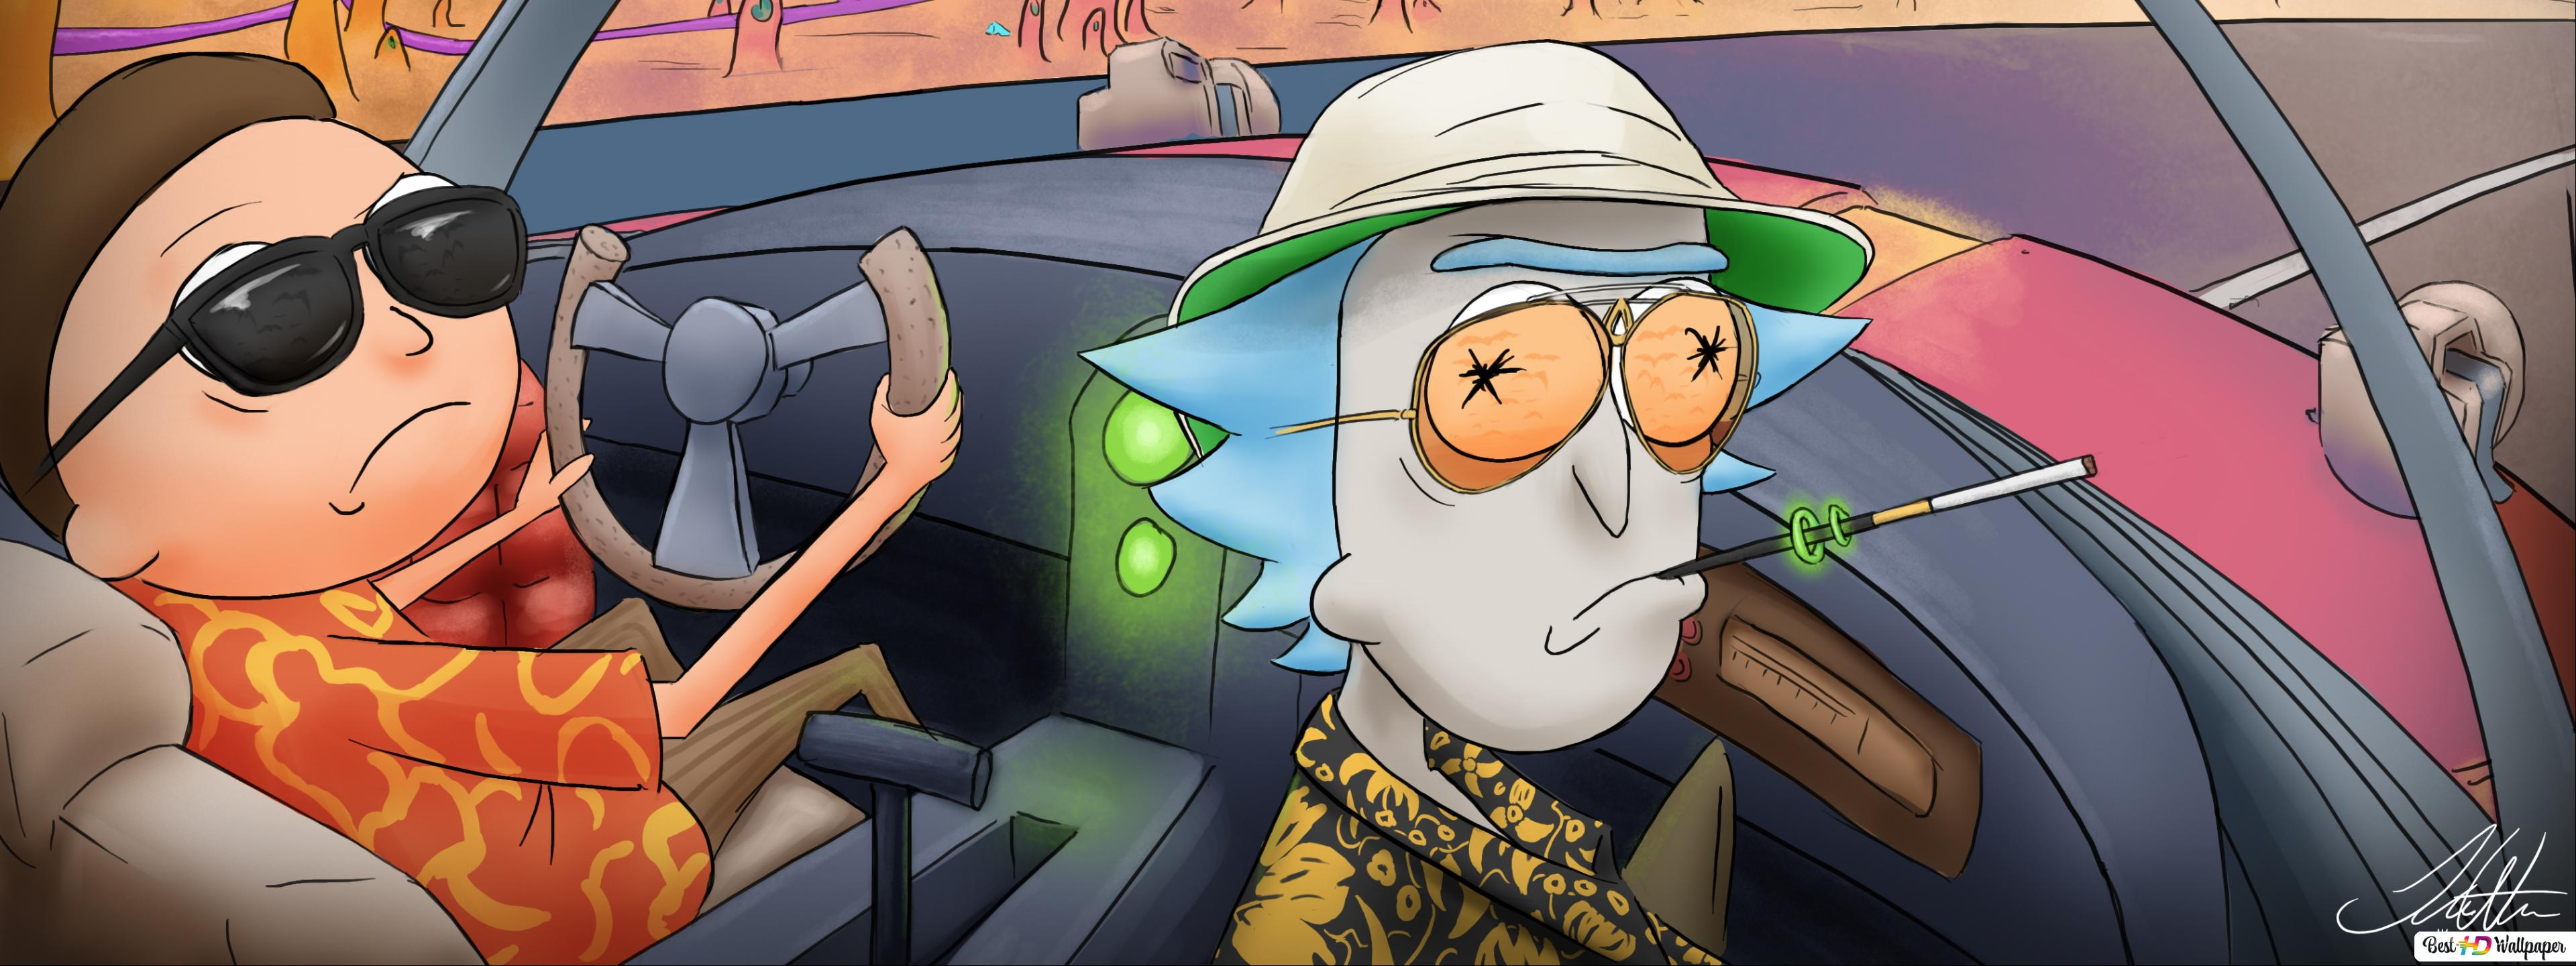 Rick And Morty Cool Driving Hd Wallpaper Download